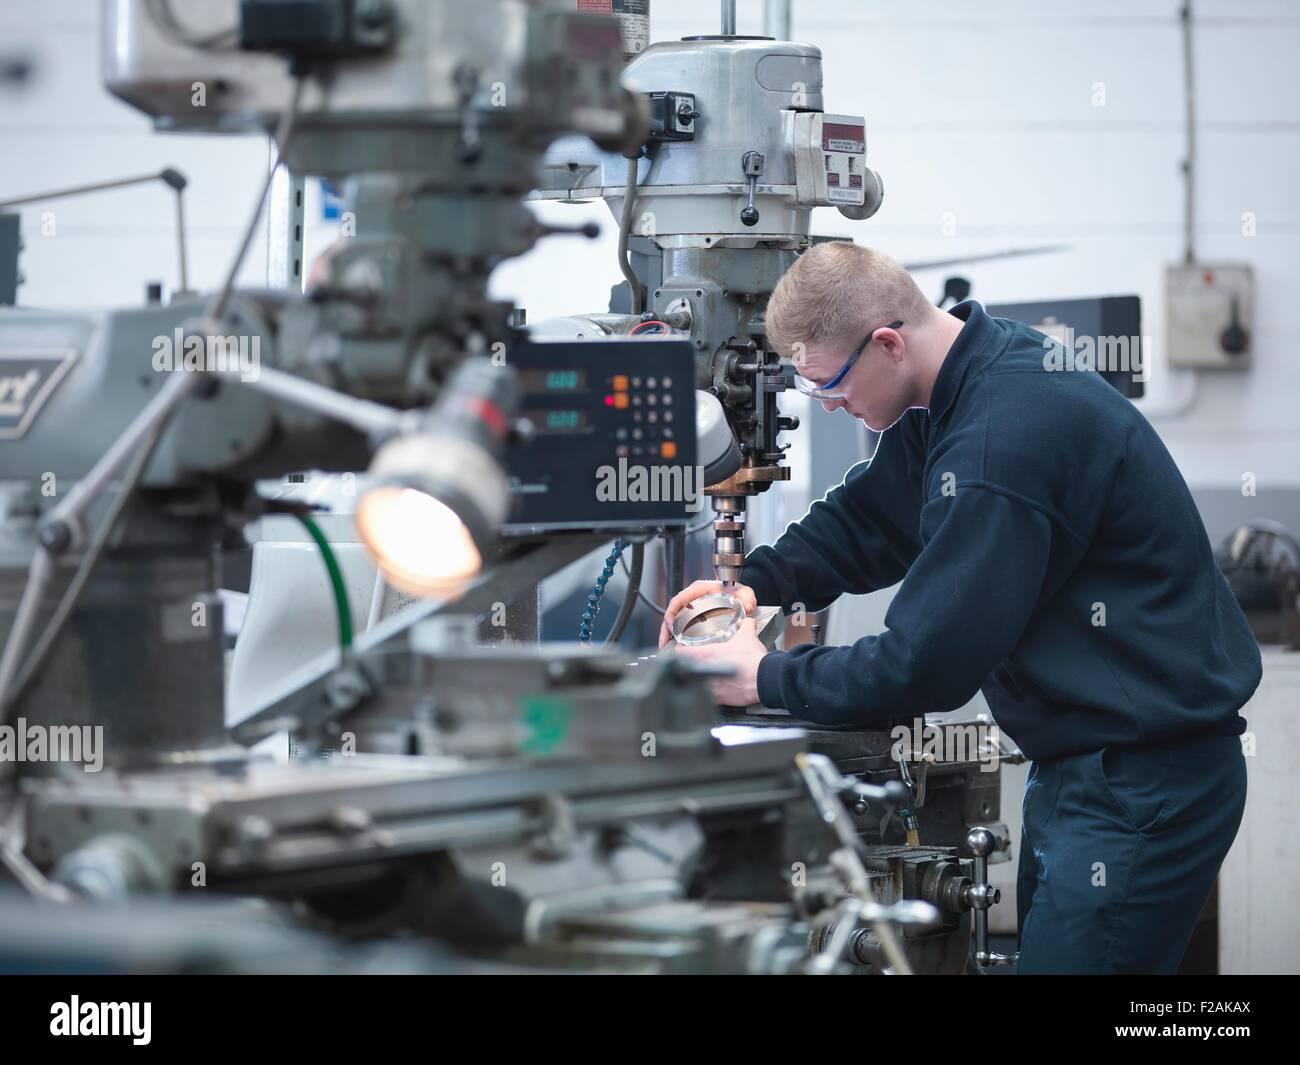 Apprentice engineer on lathe in engineering factory - Stock Image